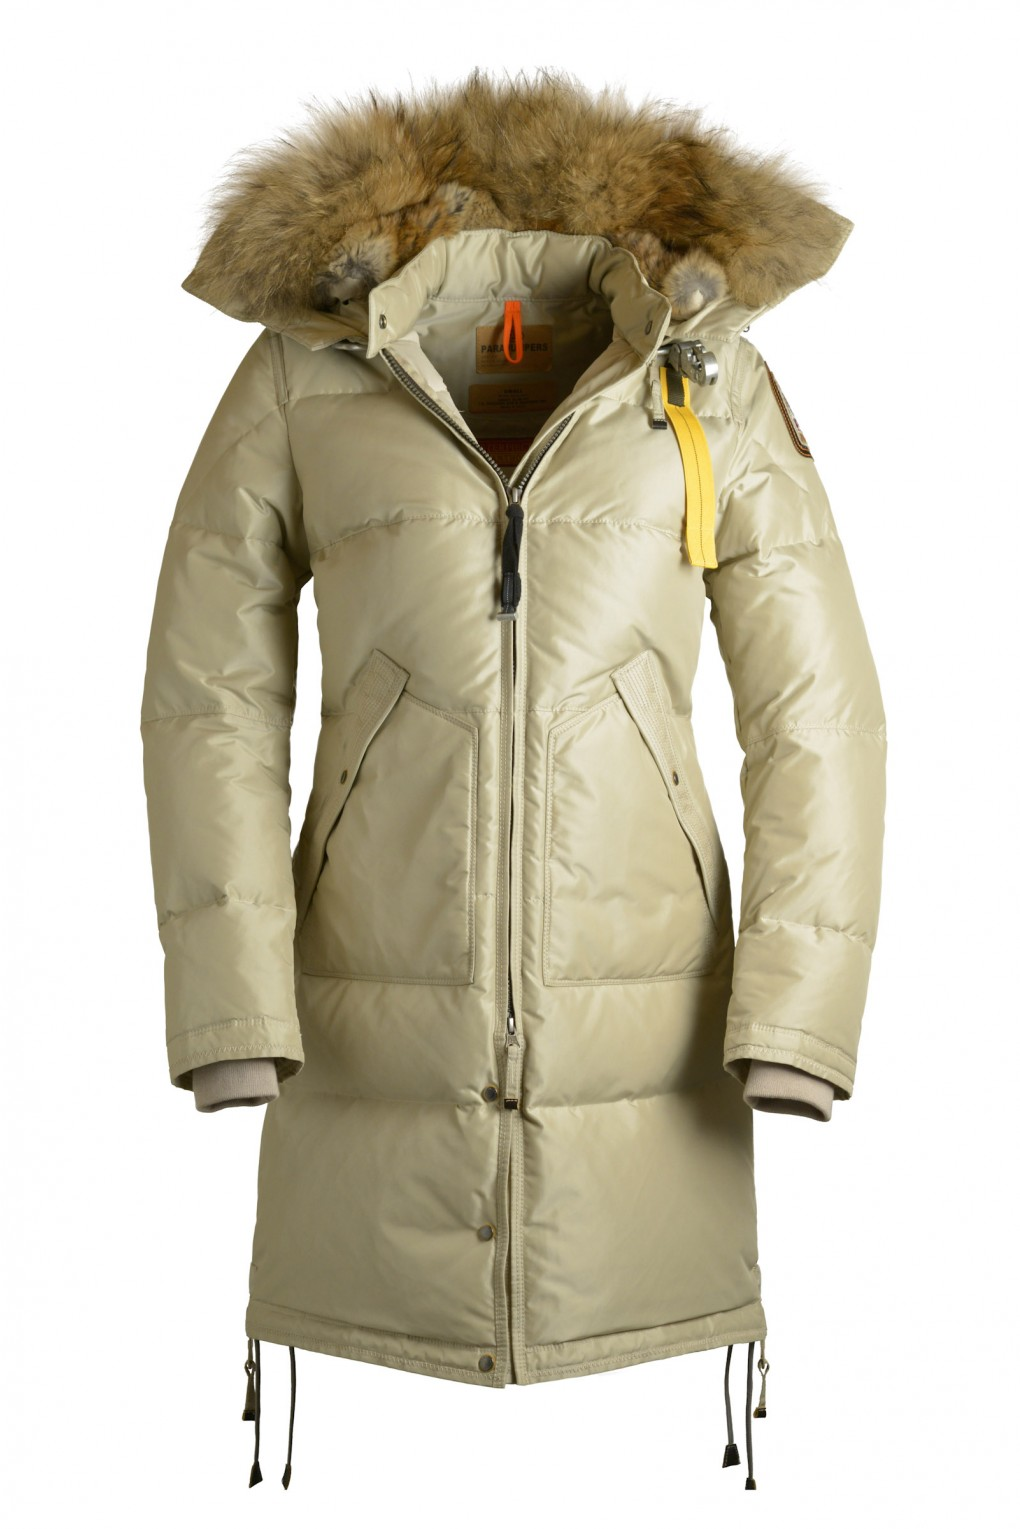 parajumpers LONG BEAR woman outerwear Sand